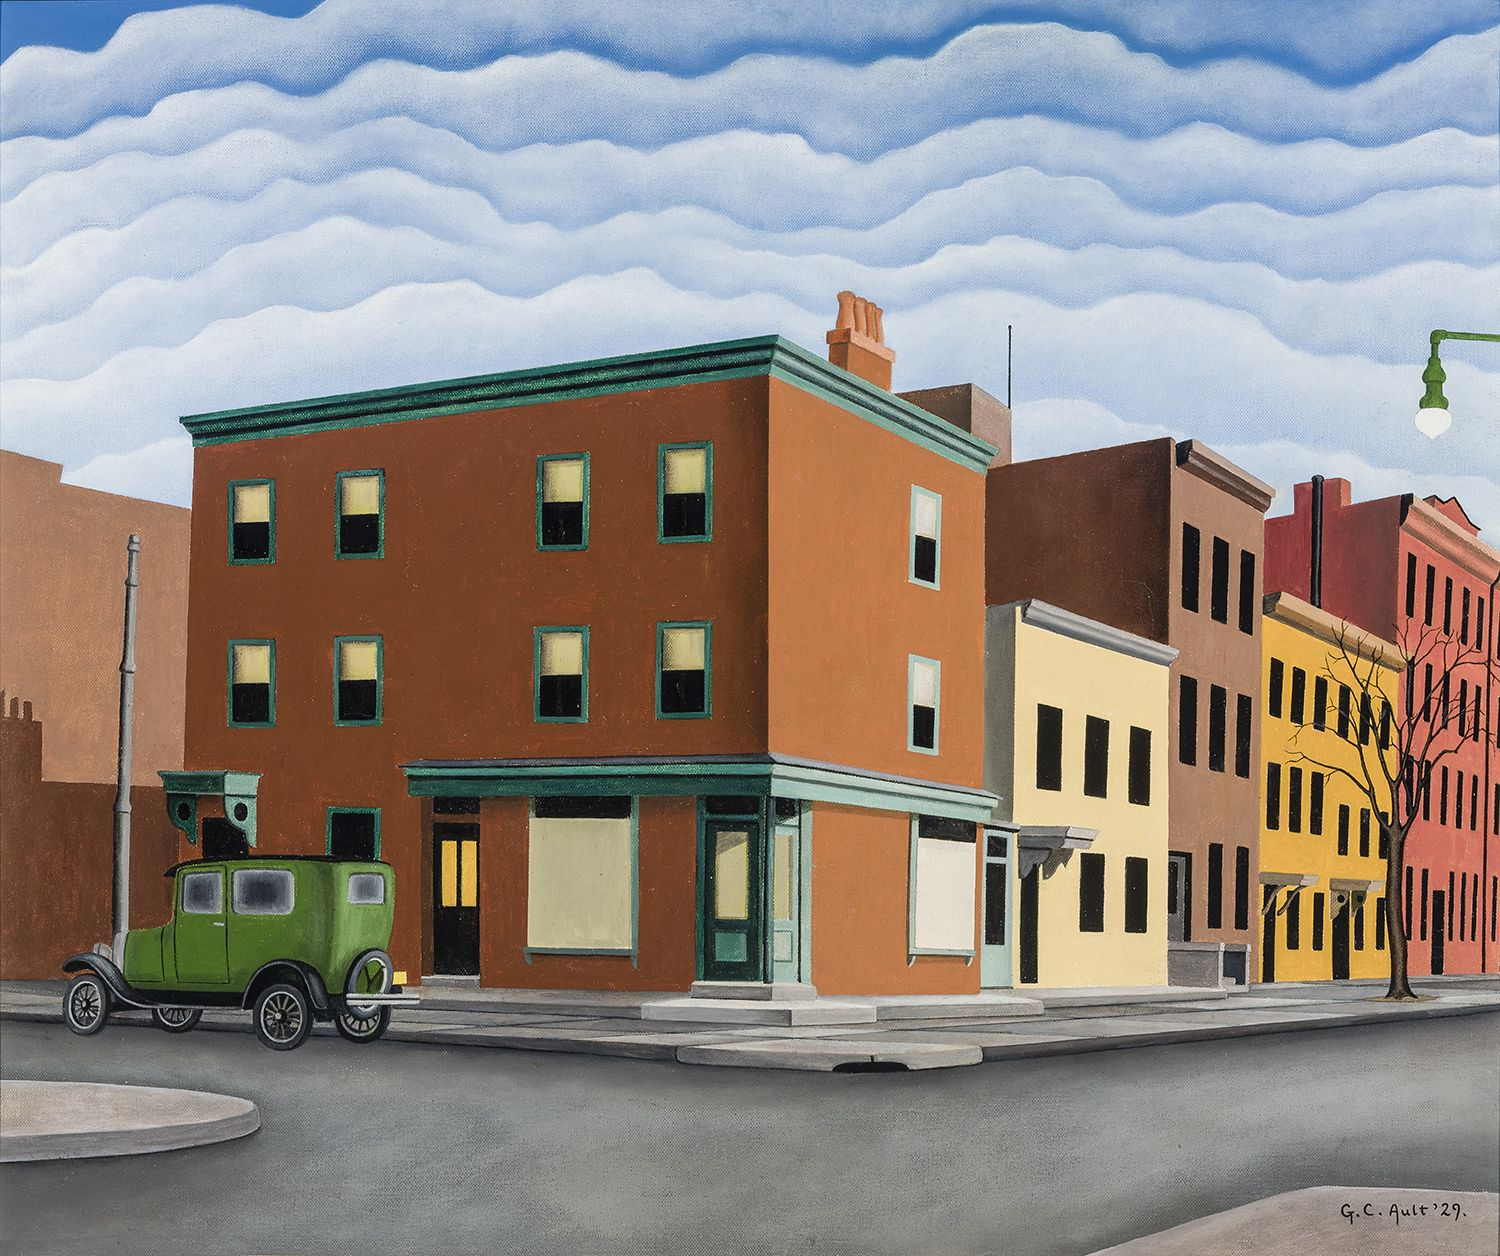 GEORGE COPELAND AULT (1891–1948), Morning in Brooklyn, 1929. Oil on canvas, 20 x 24 in.